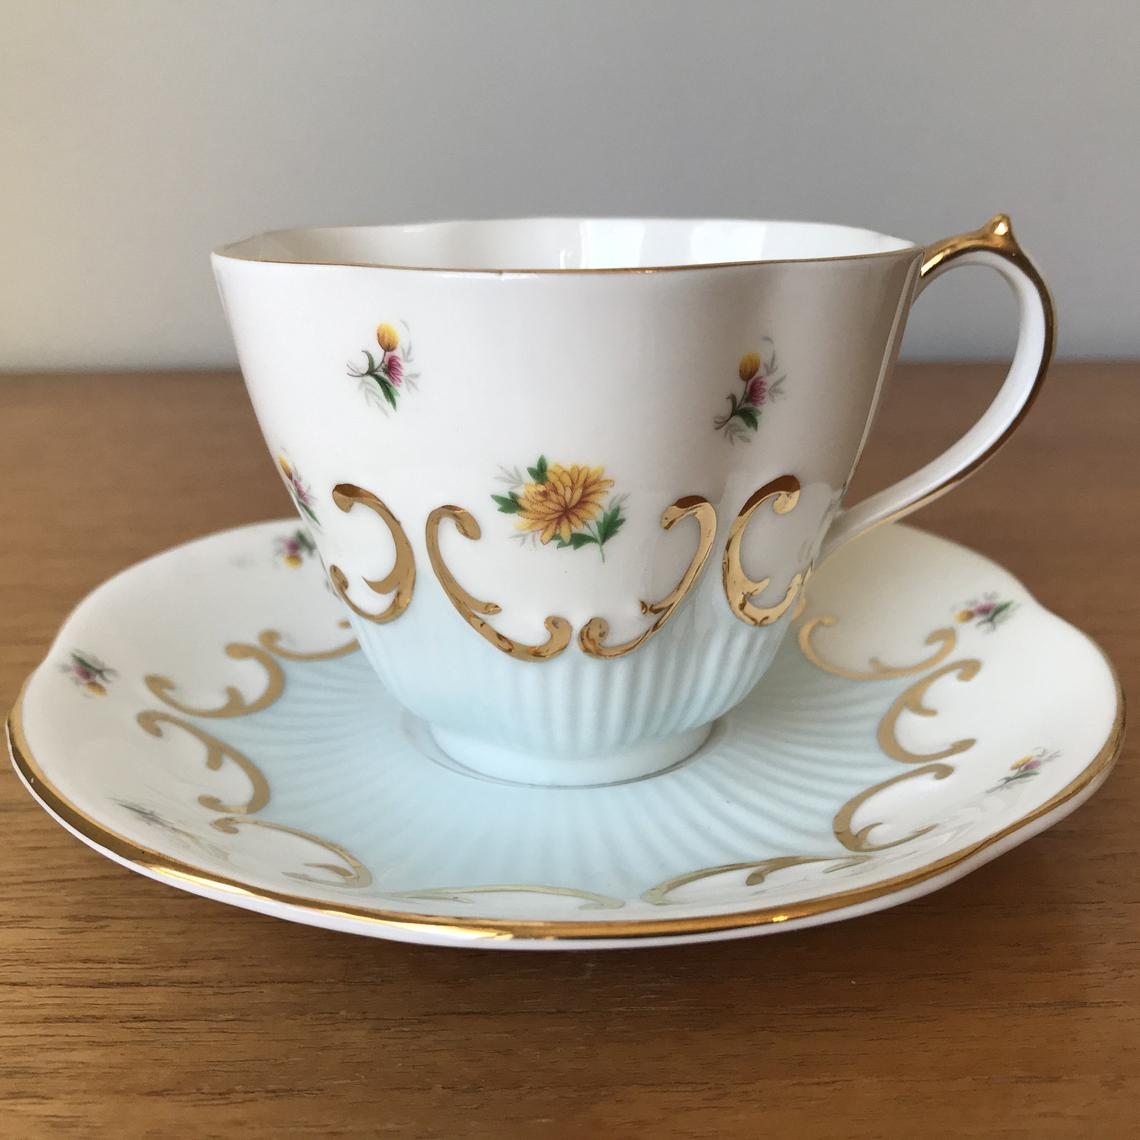 Queen Anne Tea Cup and Saucer, Pale Blue and White Teacup and Saucer with Flowers